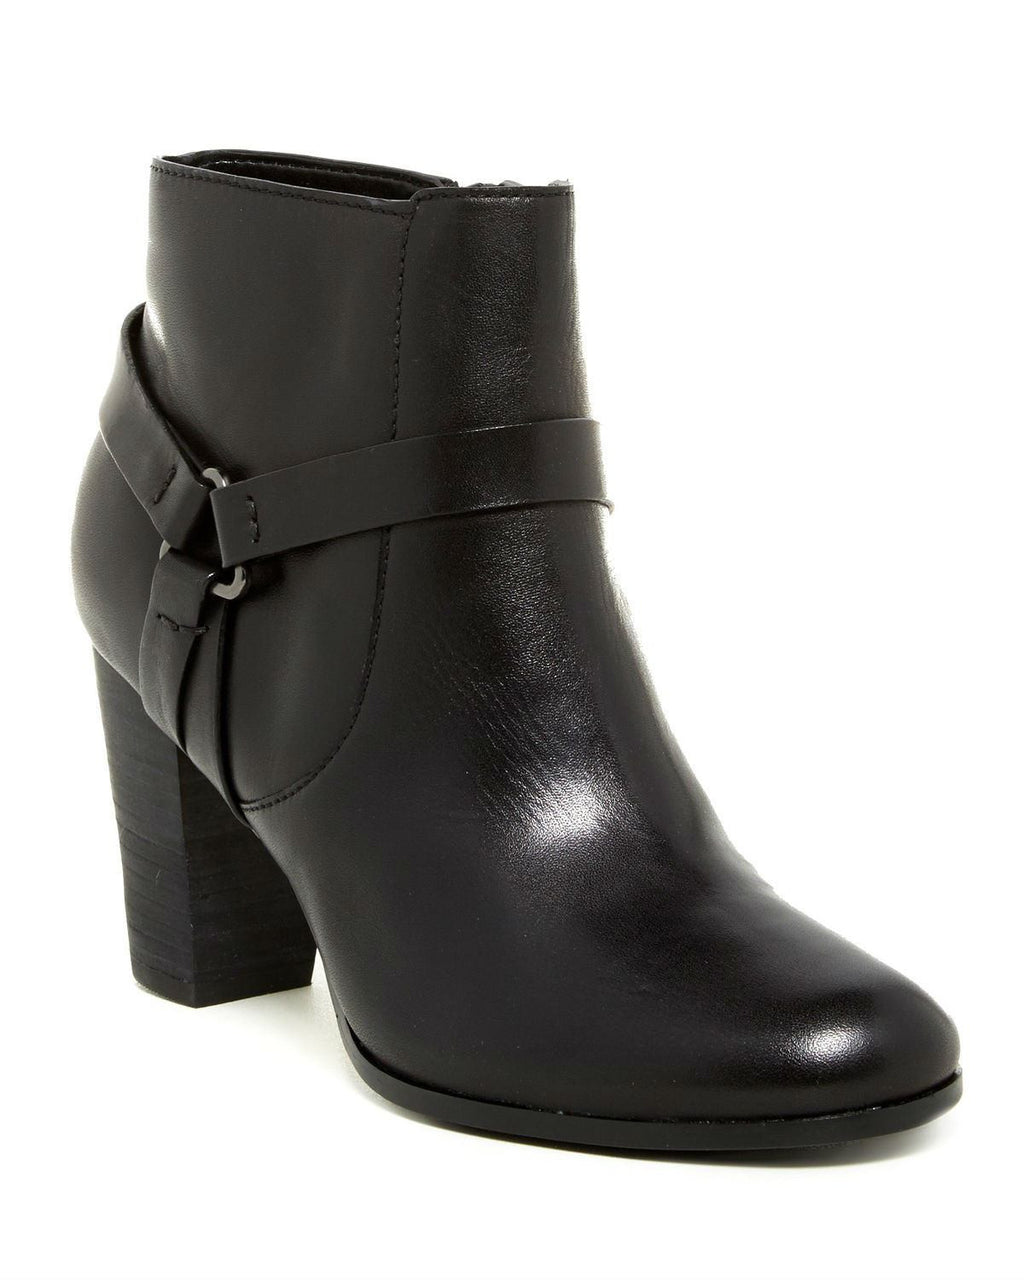 Cole Haan Calixta Leather Bootie-COLE HAAN-Fashionbarn shop